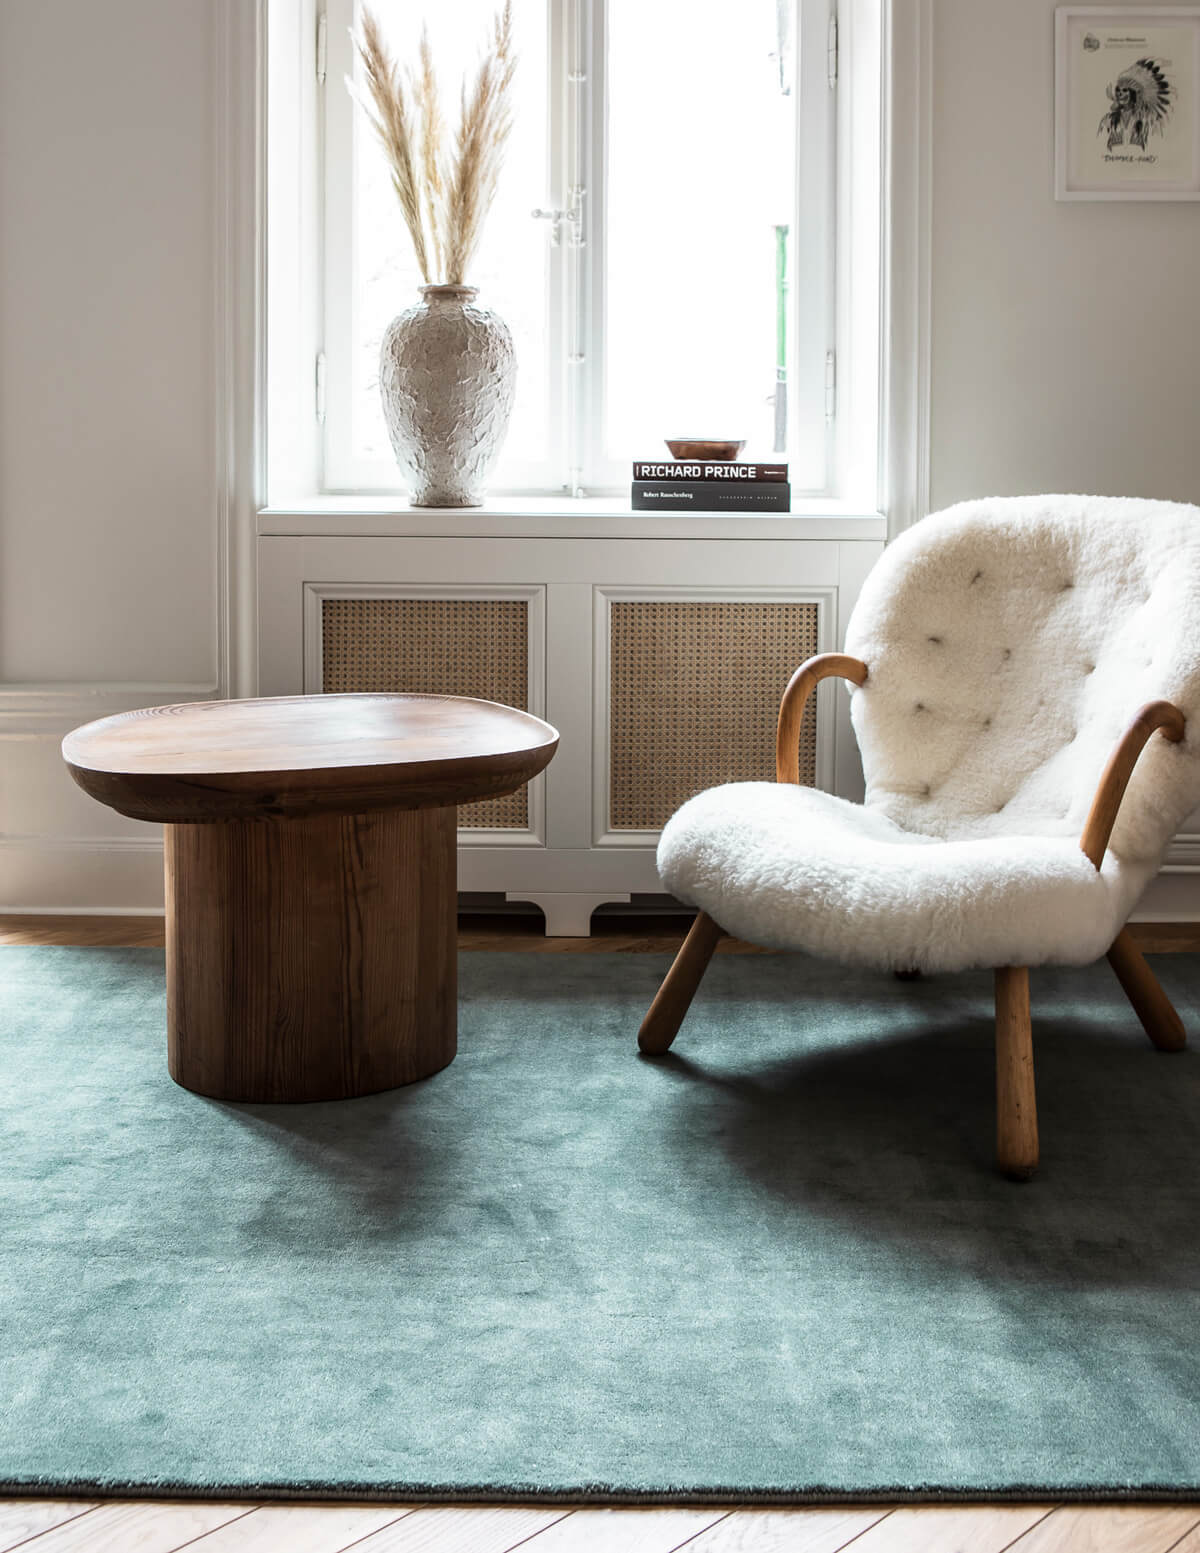 Grand in the color Pale Green displayed in a living room, styled with a wooden side table and sheep fur armchair.